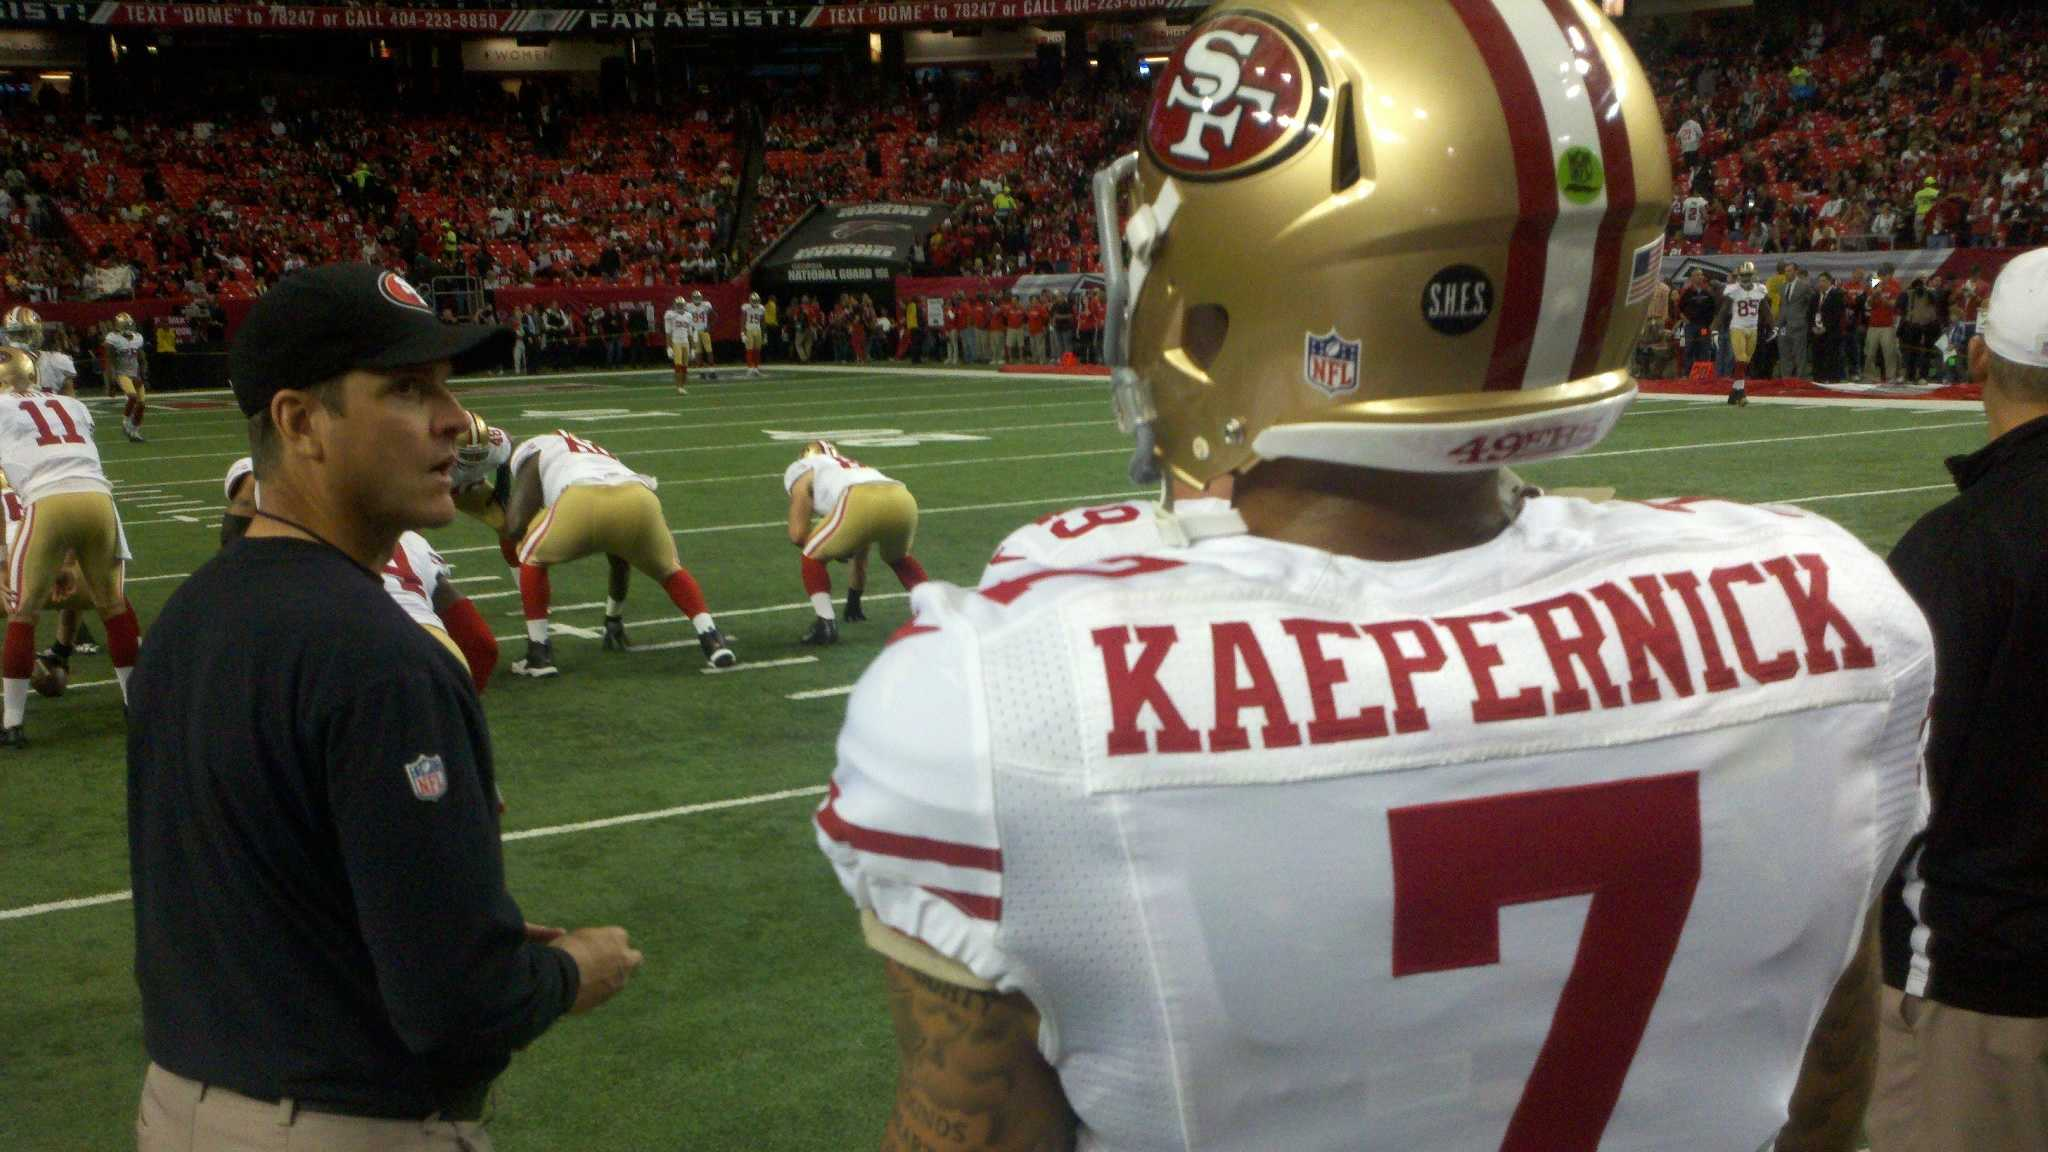 Kaepernick, Jim Harbaugh